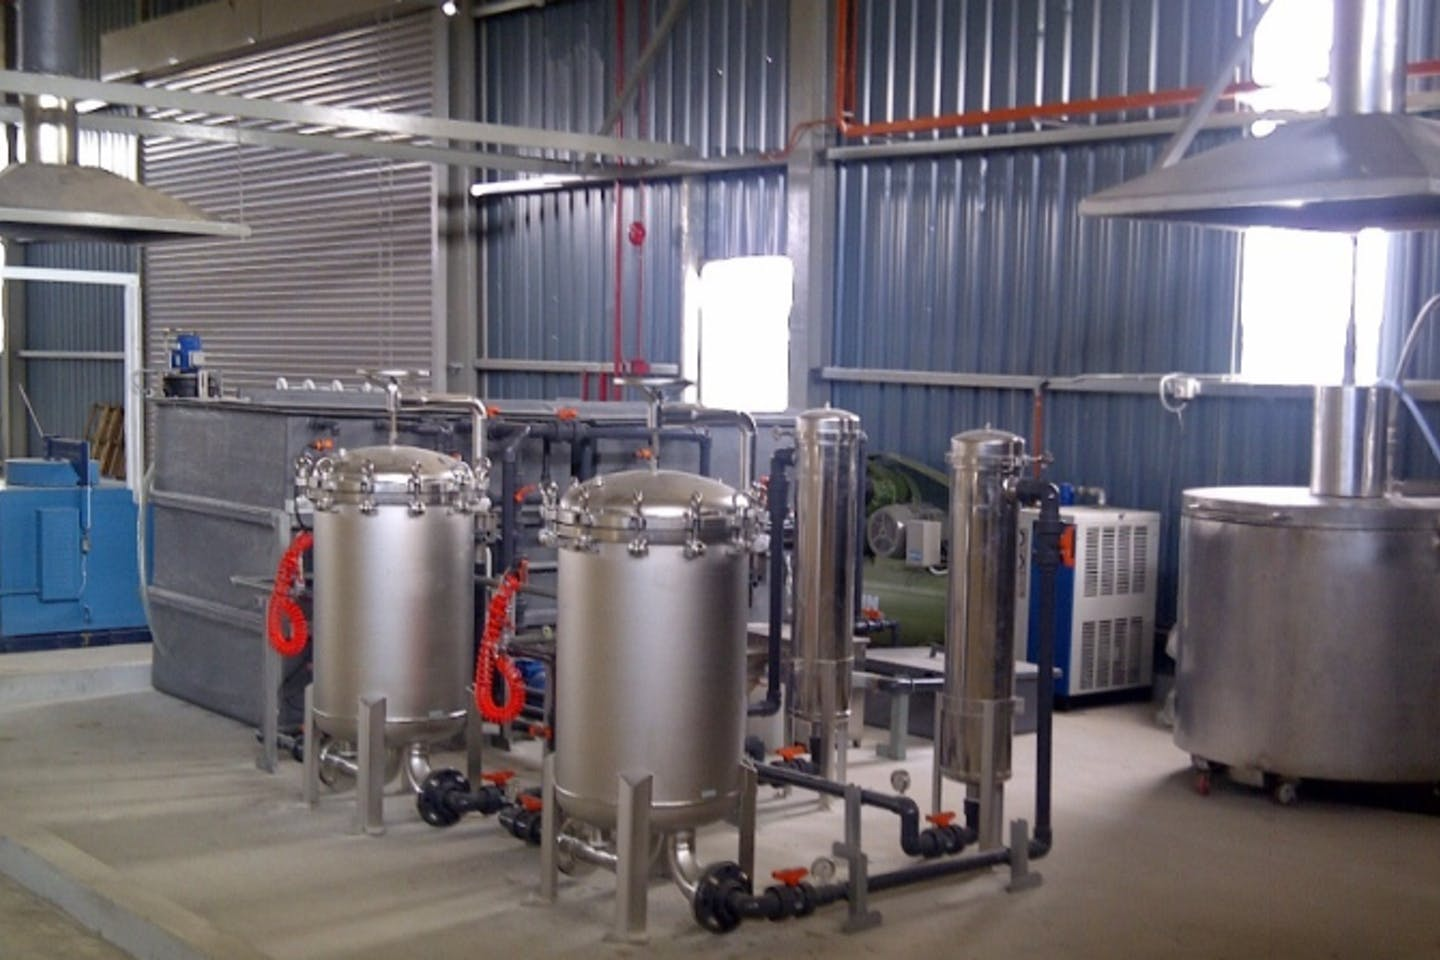 Blue Planet's latest acquisition marks entry into industrial waste processing